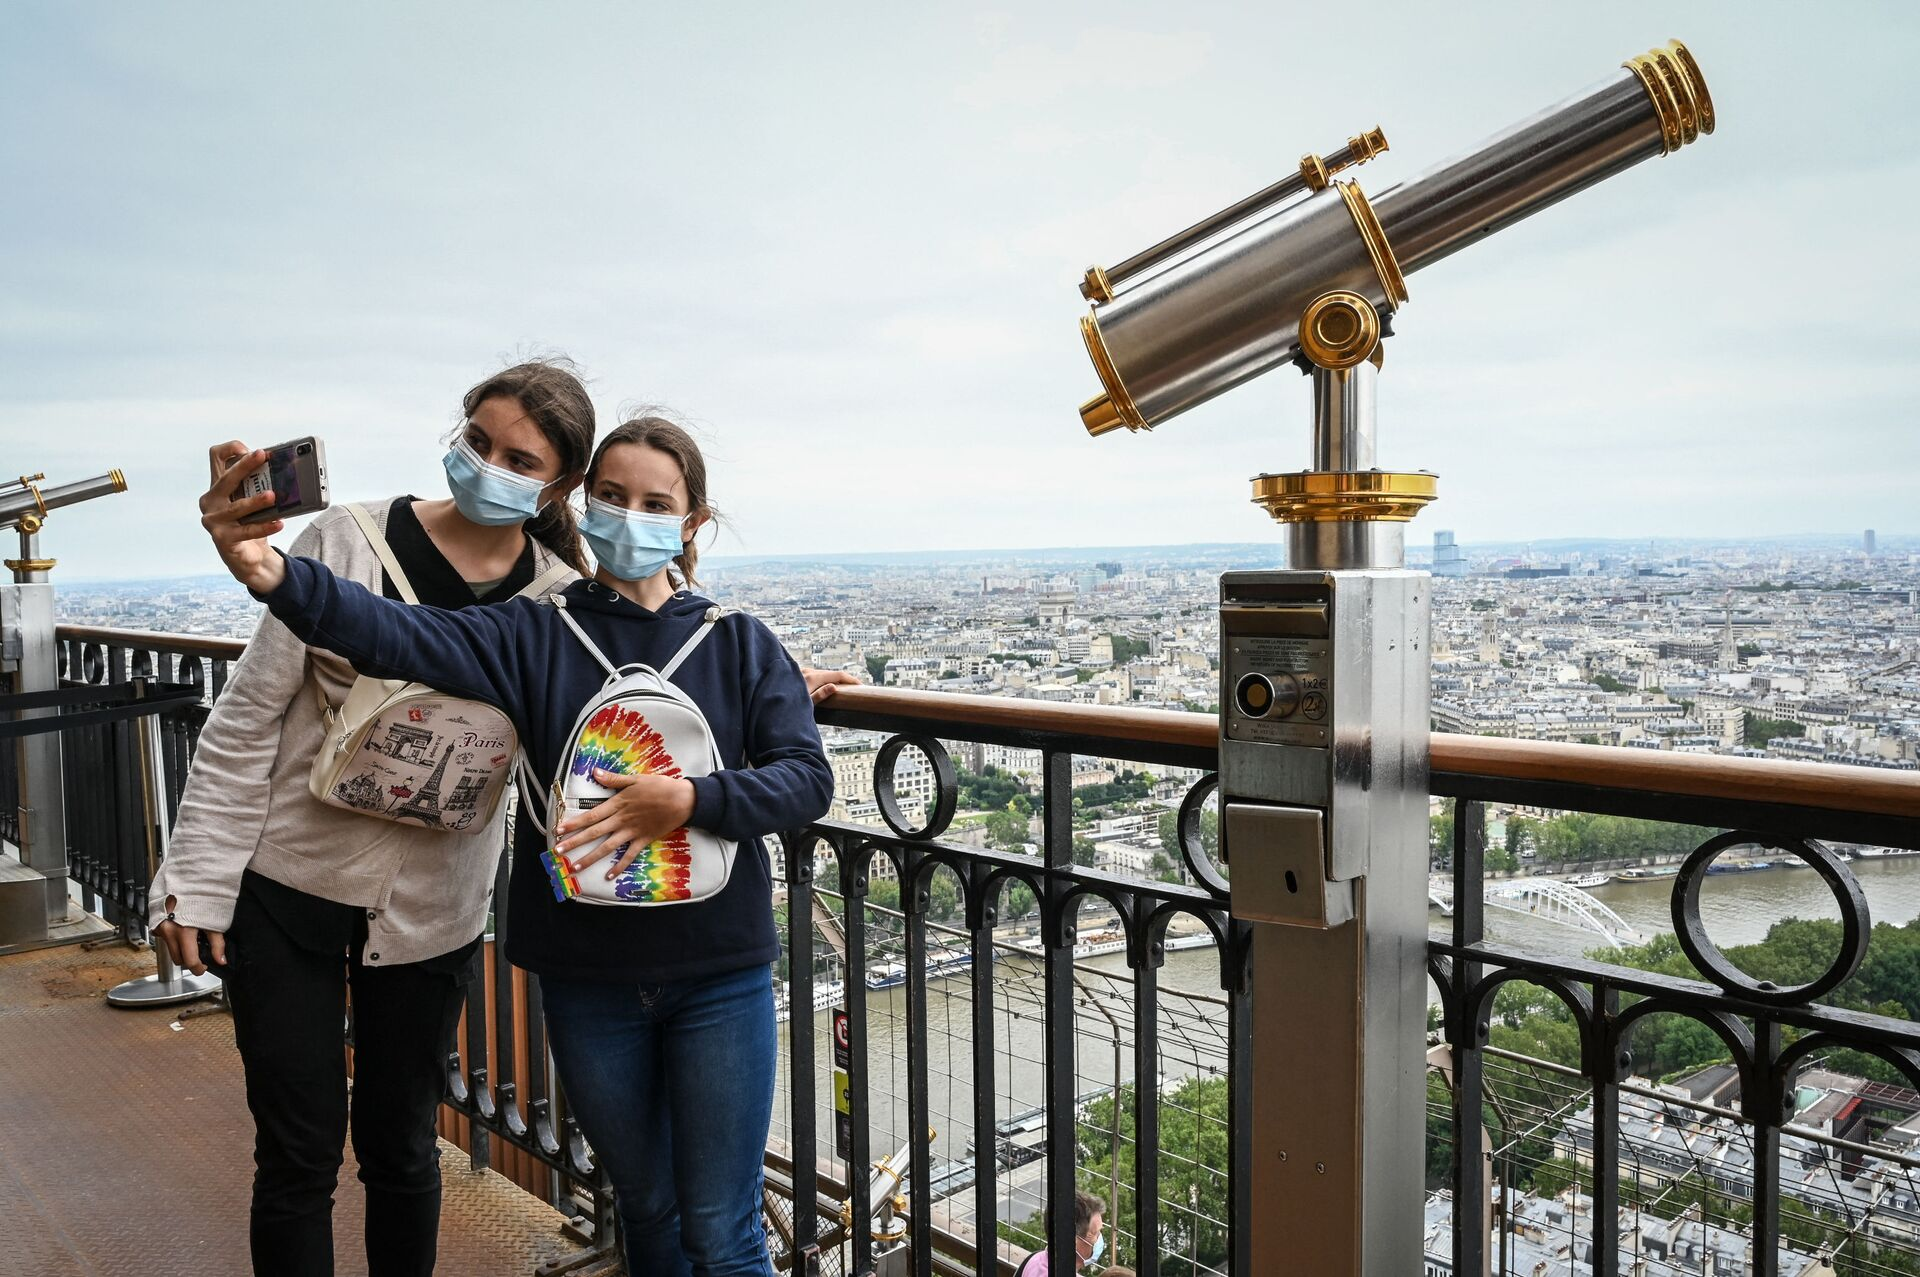 Visitors take a selfie picture as they visit the Eiffel Tower in Paris, on July 16, 2021. - The Eiffel Tower reopened to visitors on July 16, 2021, after nine months of shutdown caused by the Covid pandemic. Up to 13,000 people per day will be allowed to take the elevators to the top and take in the views over the French capital, down from 25,000 in the pre-Covid era - Sputnik International, 1920, 07.09.2021